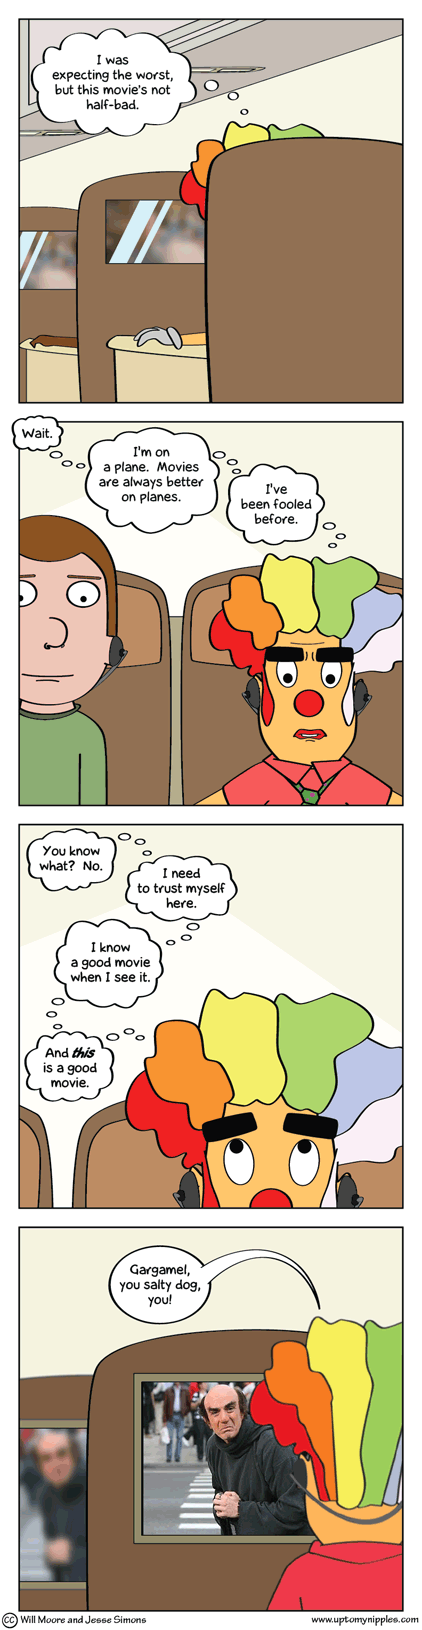 Sense and Sense Abilities comic